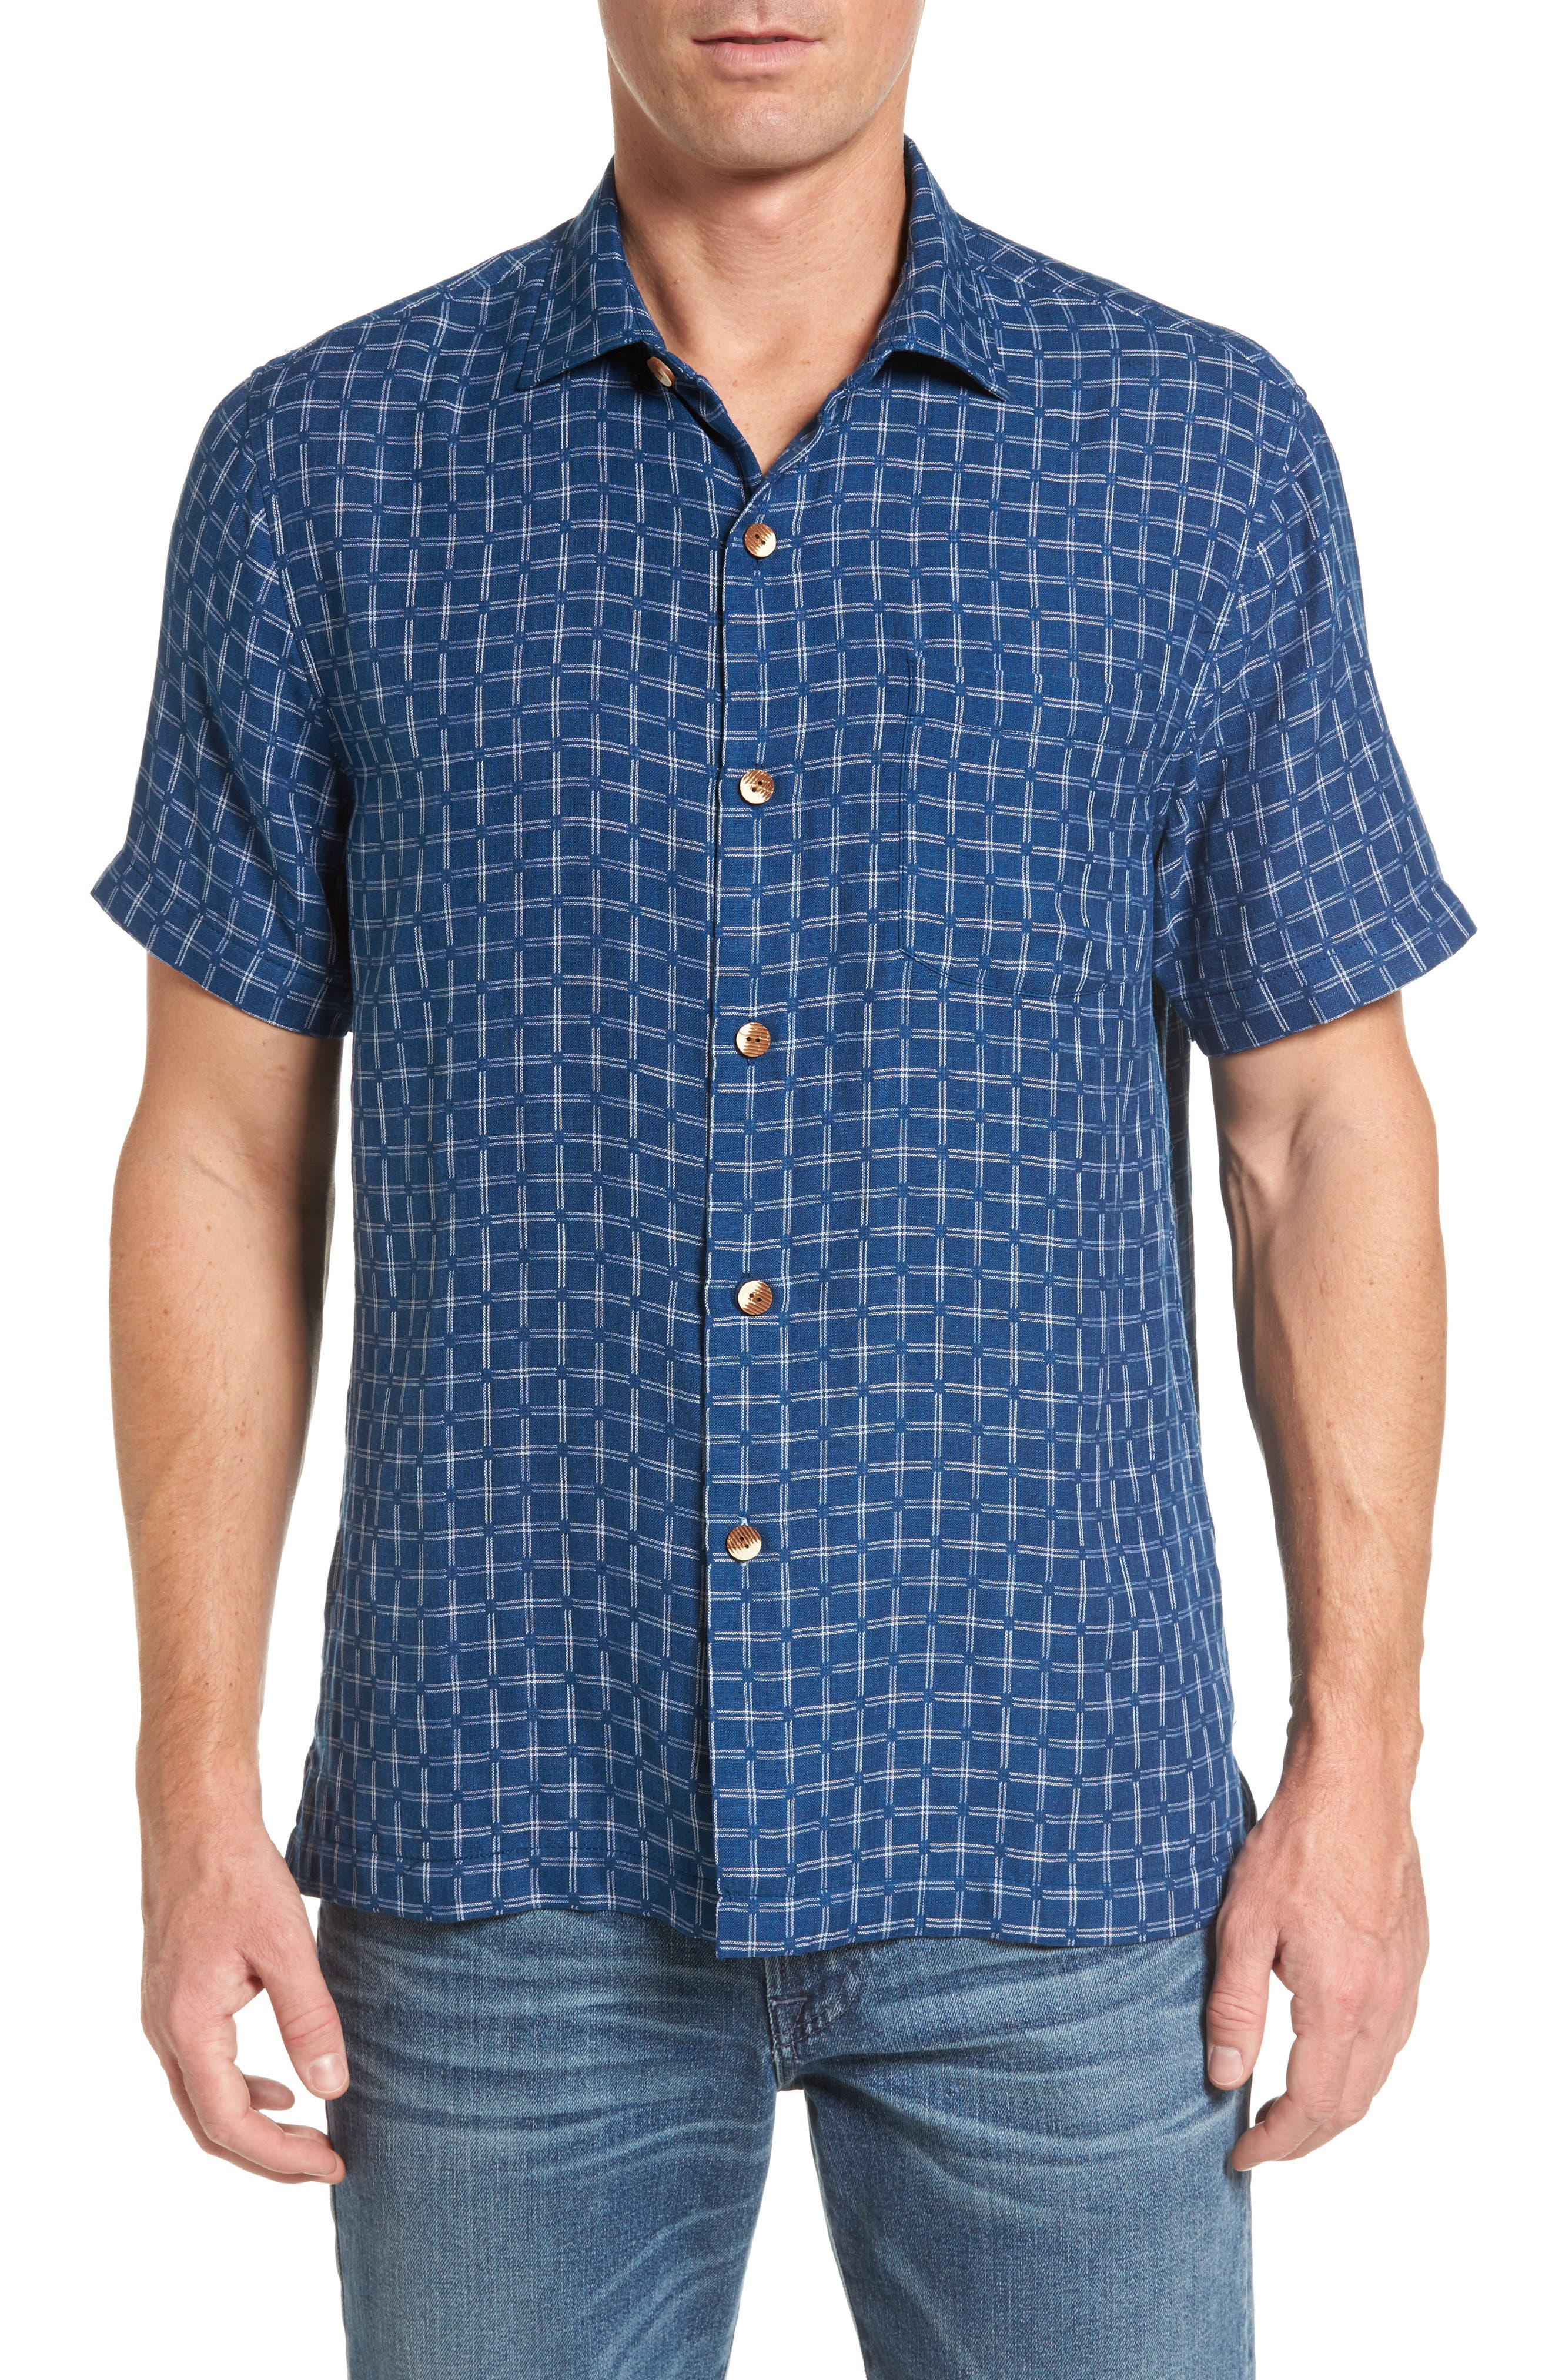 Main Image - Tommy Bahama Keep It in Check Standard Fit Silk Blend Camp Shirt